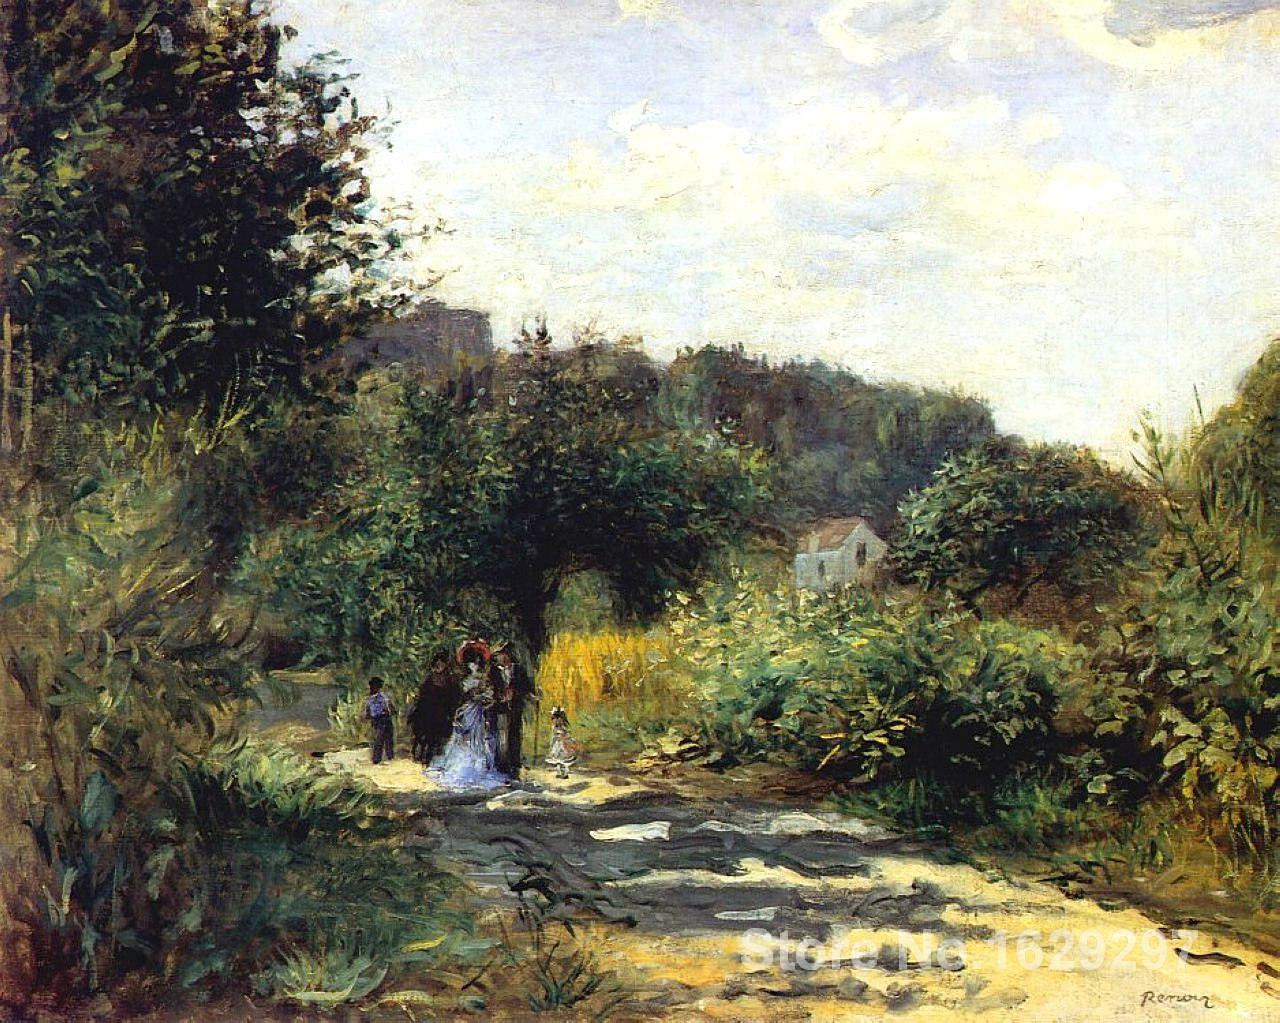 paintings on canvas A Road in Louveciennes by Pierre Auguste Renoir Reproduction High Quality Hand-paintedpaintings on canvas A Road in Louveciennes by Pierre Auguste Renoir Reproduction High Quality Hand-painted